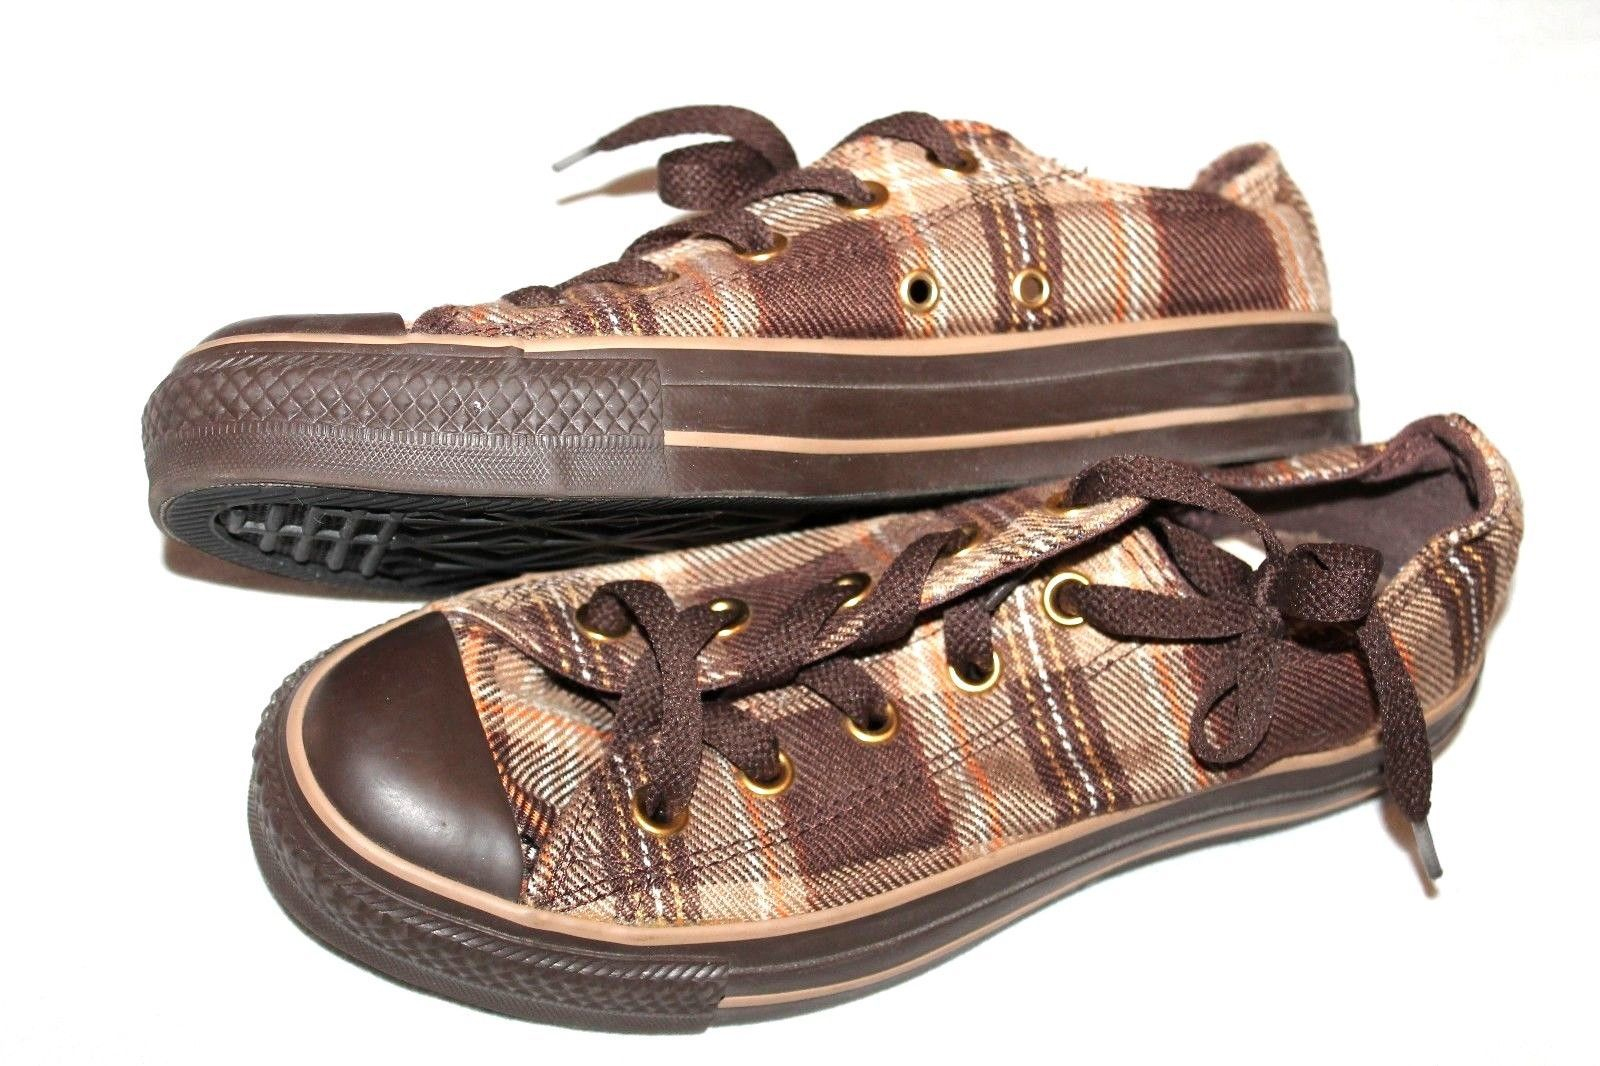 5ac423738a2 57. 57. Previous. Converse Chuck Taylor All Star Brown Plaid Low-Top  Sneakers ...